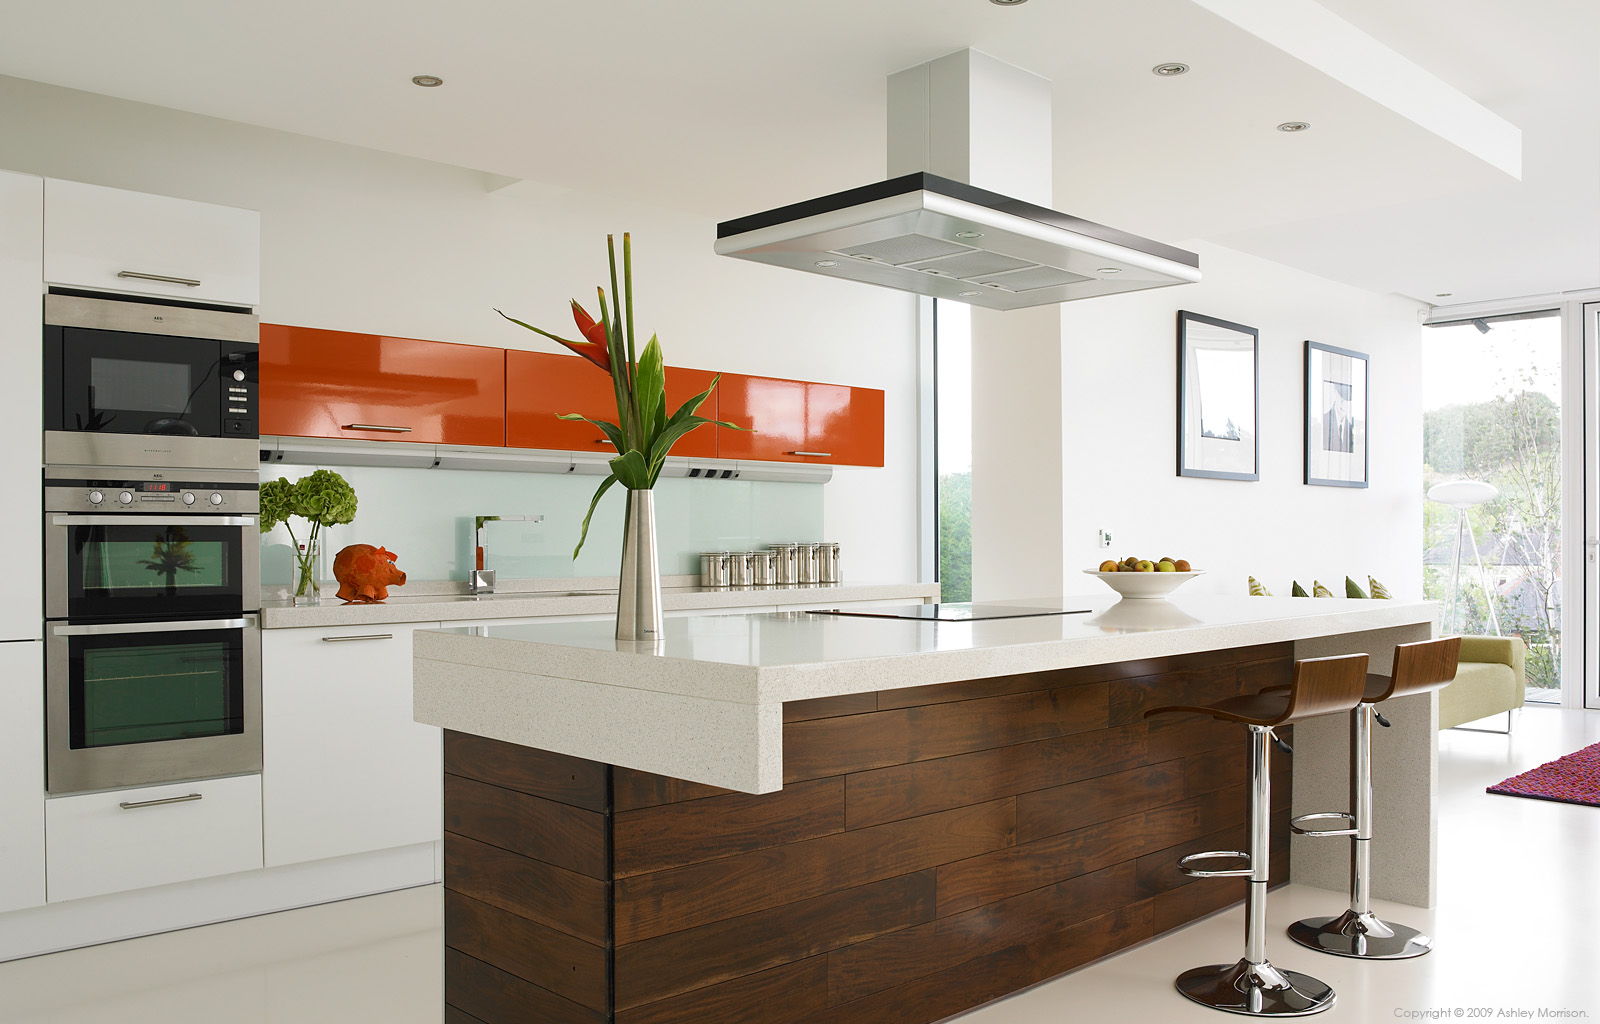 The kitchen in Amanda and Dorian Grayson's architect-designed new-build house in Huddersfield.